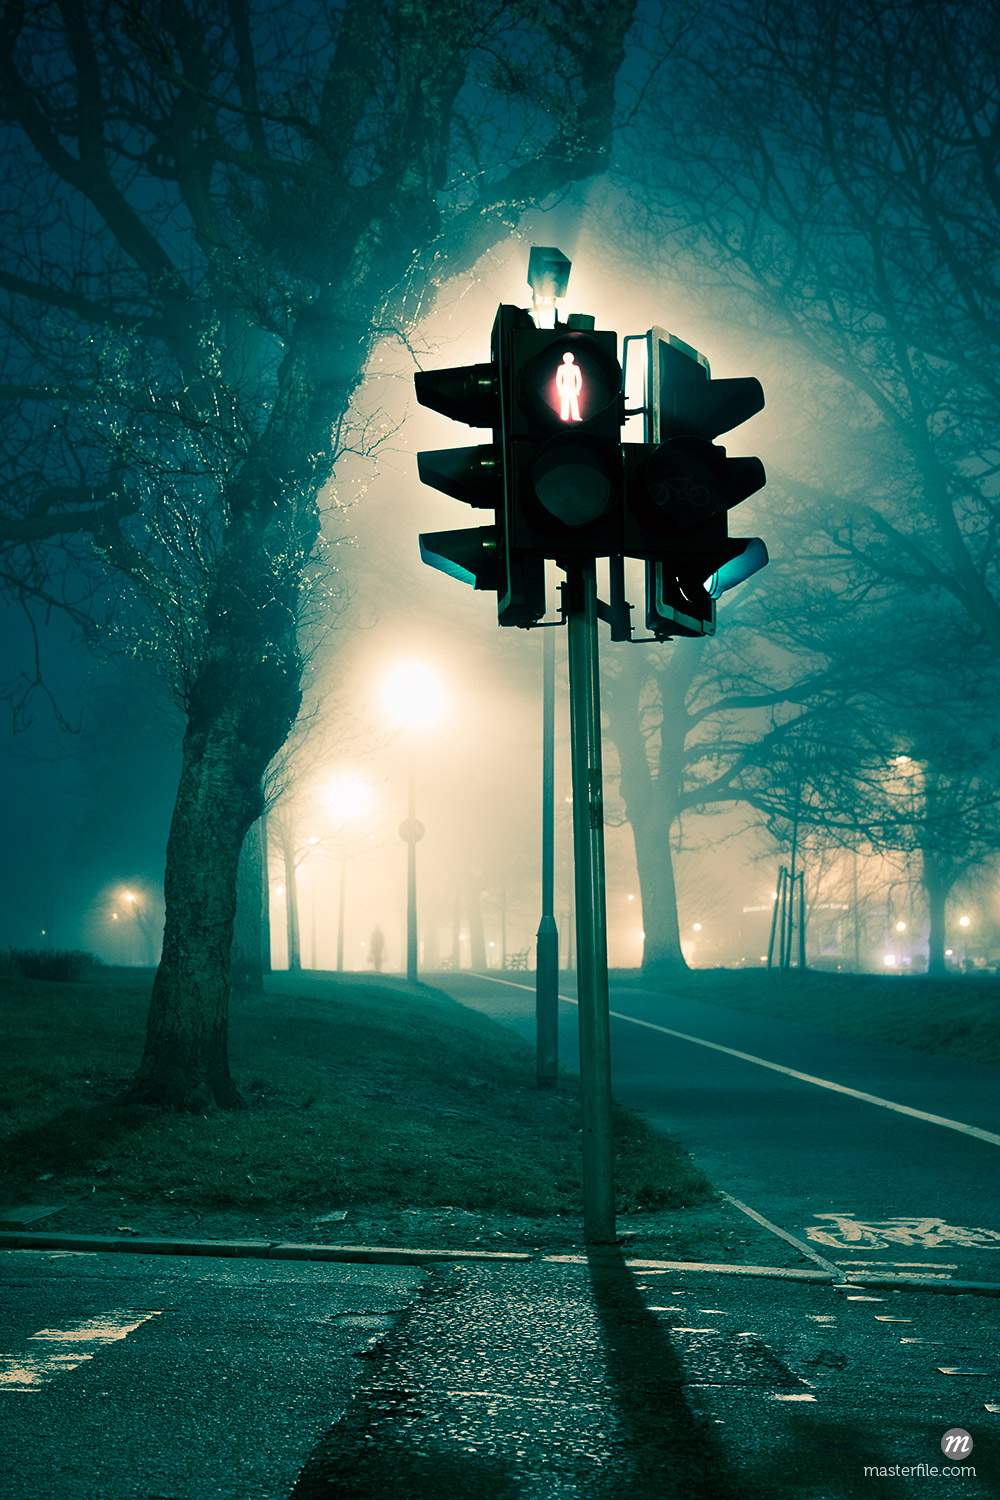 Traffic Light at Night, Edinburgh, Scotland, UK © Tim Hurst / Masterfile